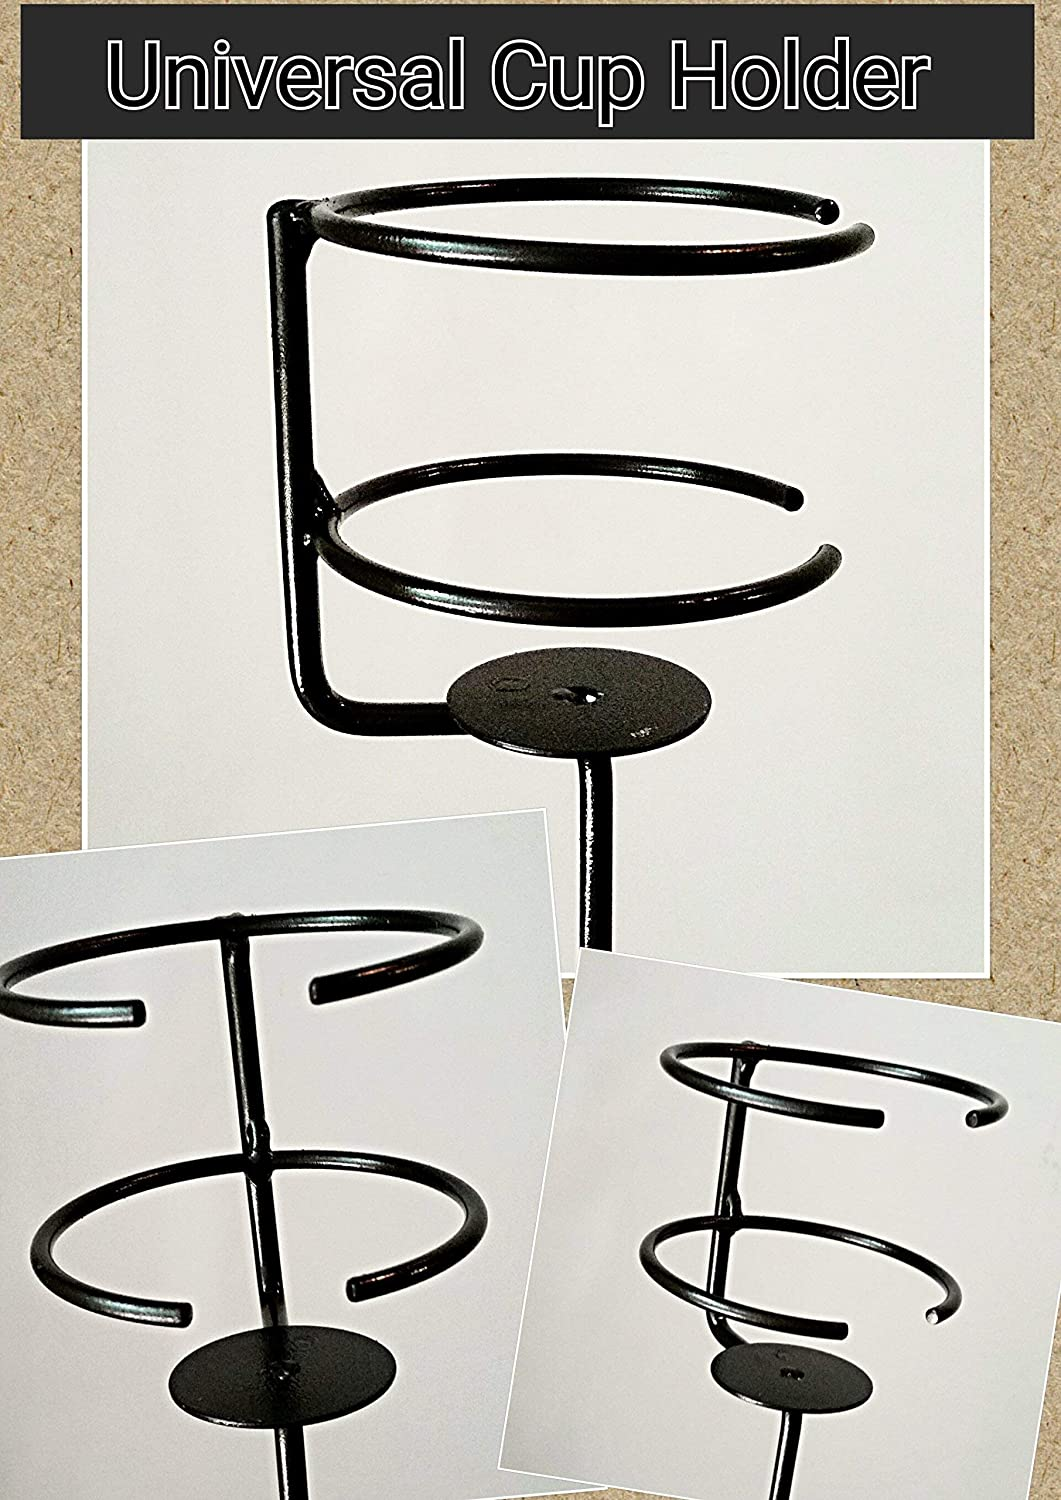 Small Party Package 2 Outdoor Wineglass /& 2 Universal Cup Holders Blacksmith Made Beer, Mug, or Cup